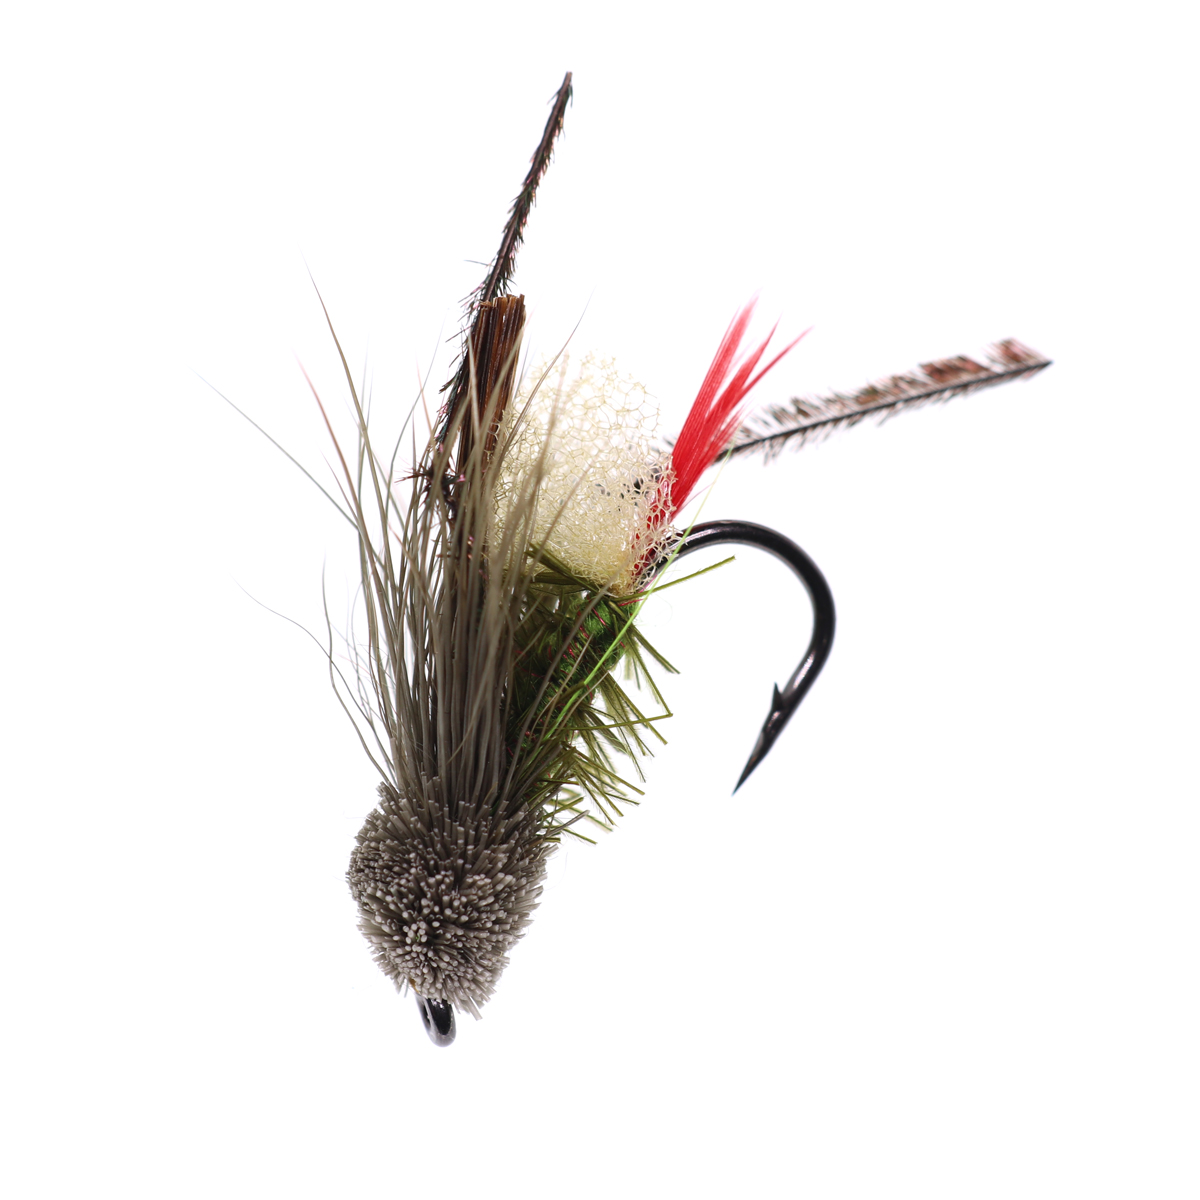 5PCS #10 Trout Fishing Fly Grass Hopper Fly terrestrial Hopper Fly Floating Bass Crappie Bug Bait Artificial Lure 21